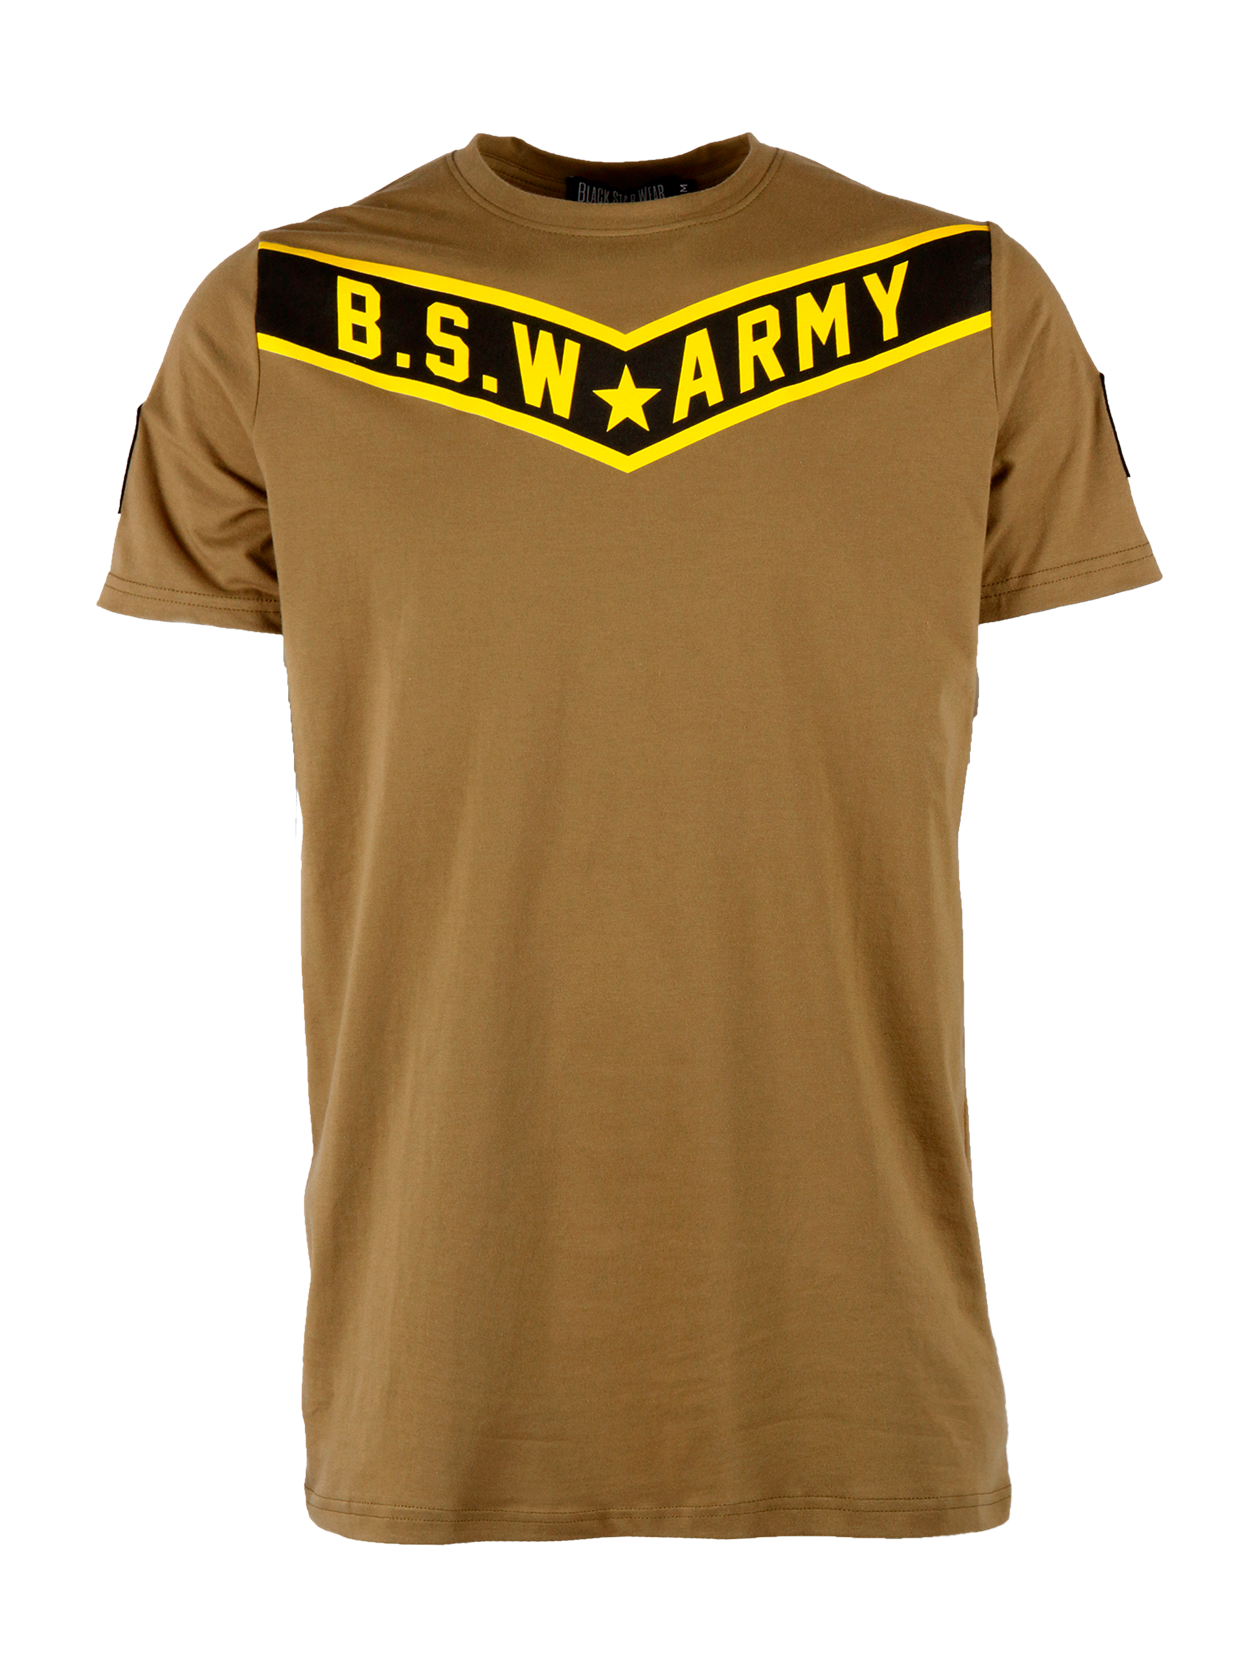 Mens t-shirt B.S.W. ArmyMens military style t-shirt by Black Star Wear. Longline cut, straight fit, natural cotton (95%) and lycra (5%) blend, o-neck. Shevron patches on the sleeves, B.S.W. Army print in black and yellow on the chest. Avaliable in khaki.<br><br>size: S<br>color: Khaki<br>gender: male